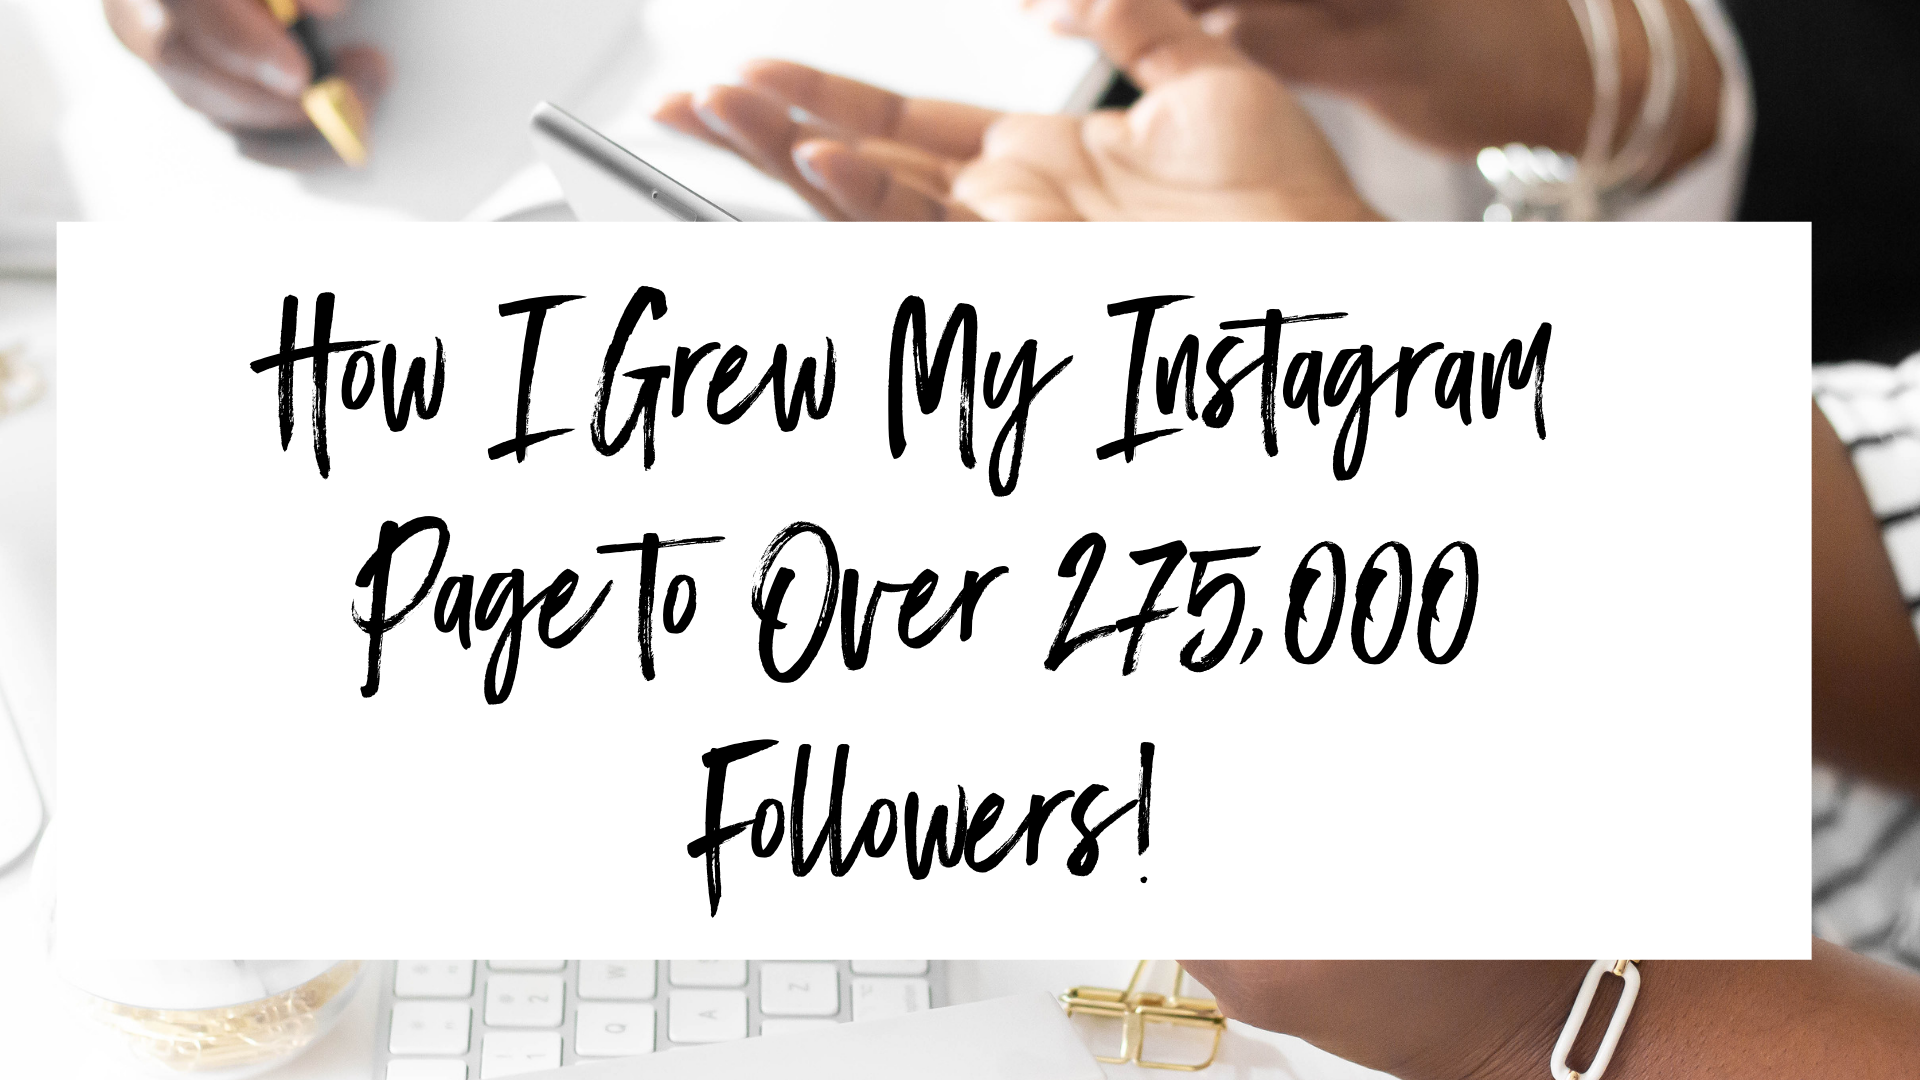 How I Grew My Instagram Page to Over 275,000 Followers!.png